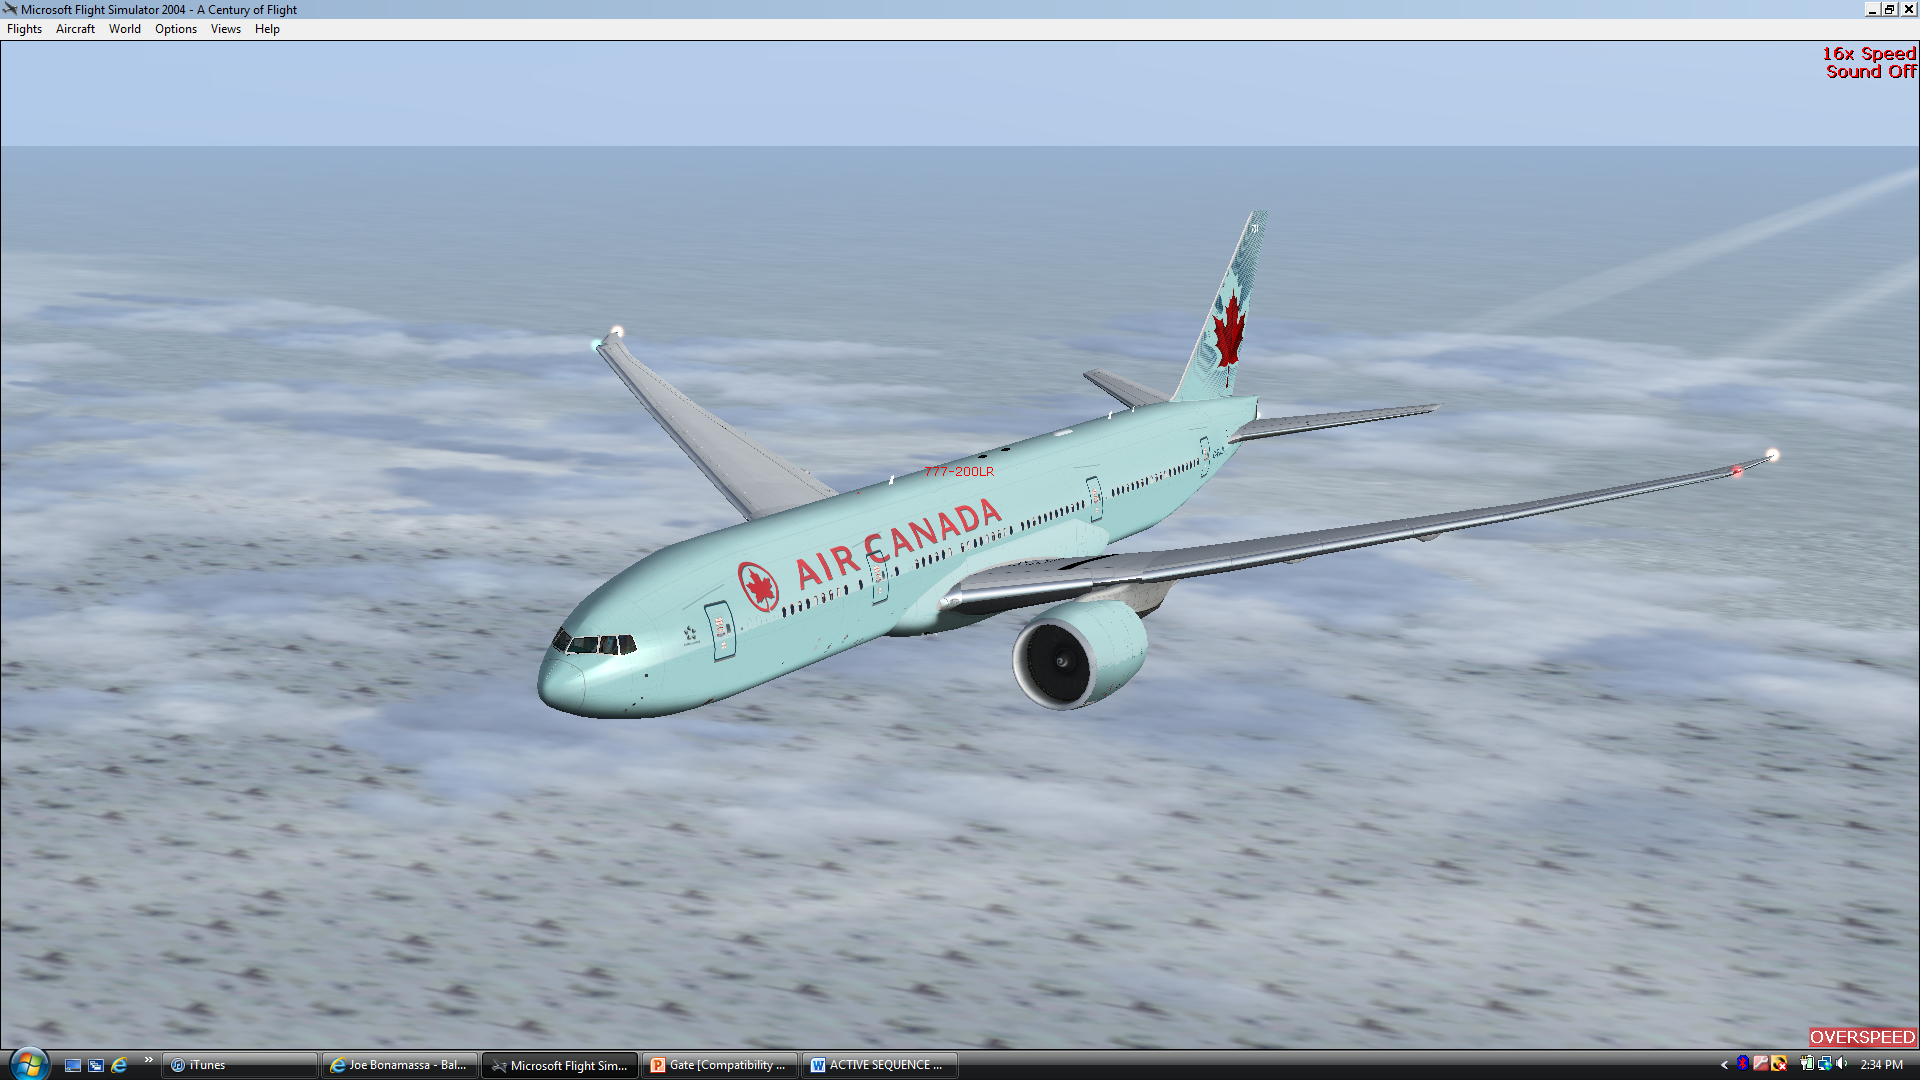 Air Canada's 777-200LR C-FIUA cruising over the ice fields